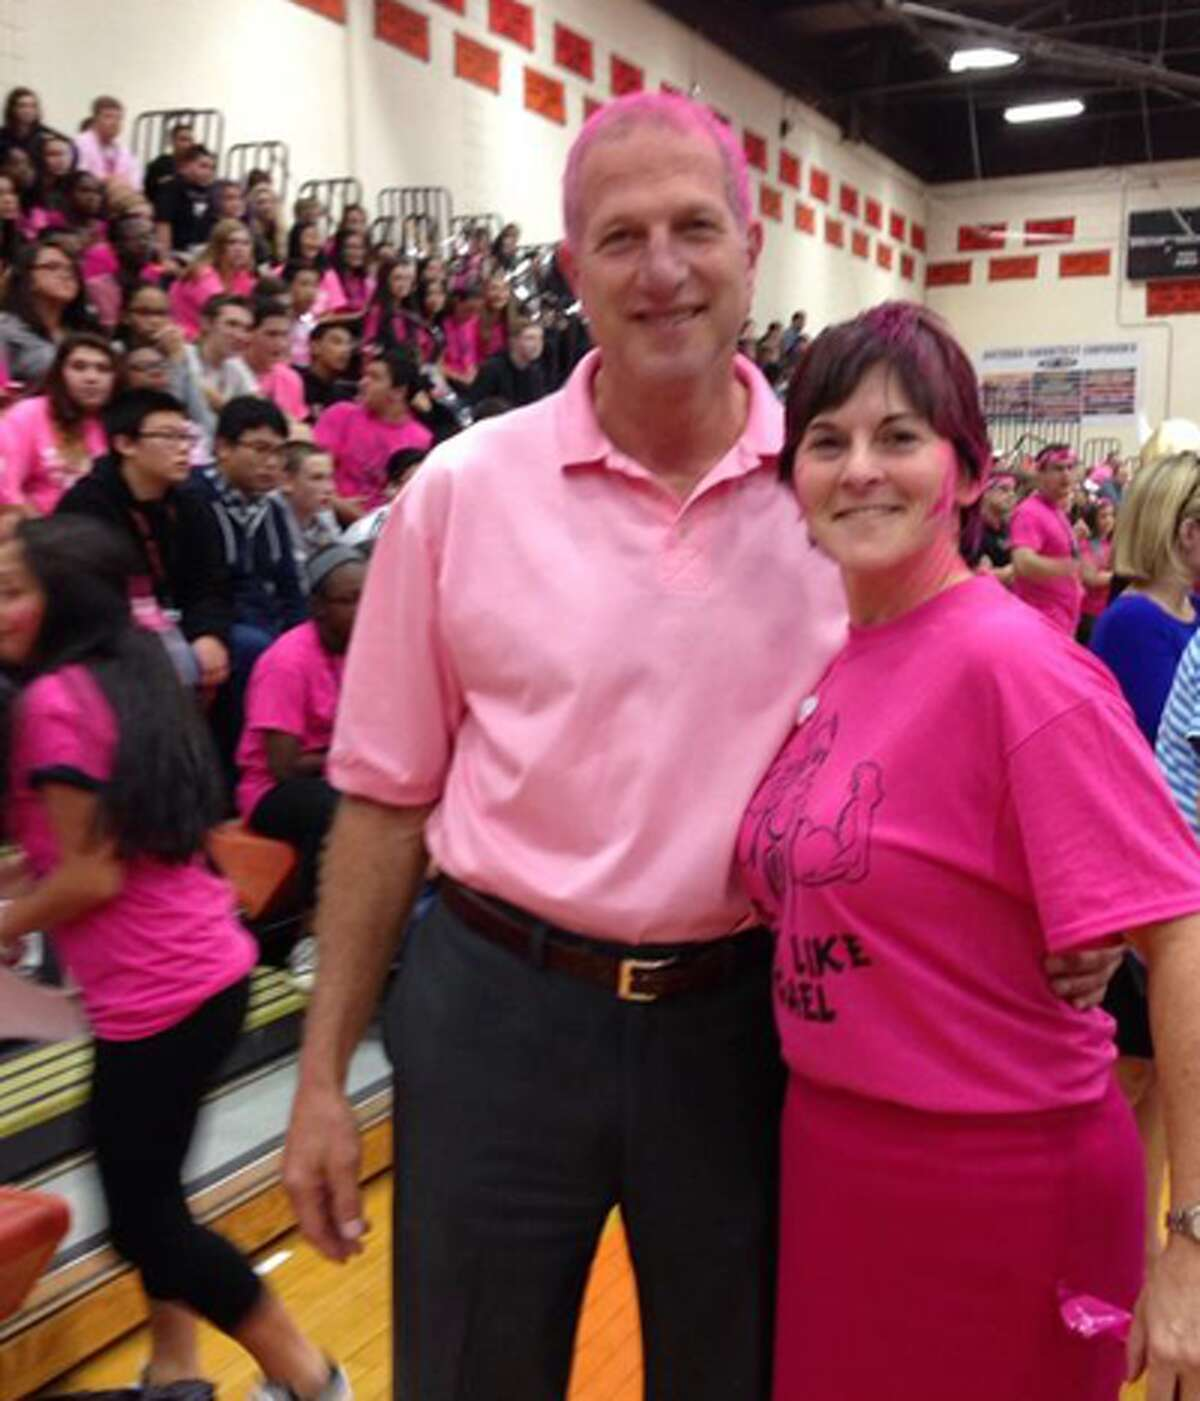 Mayor Mark Lauretti joined the fun by having his hair painted pink. Here he's with Shelton High Headmaster Beth Smith during the rally at the high school.